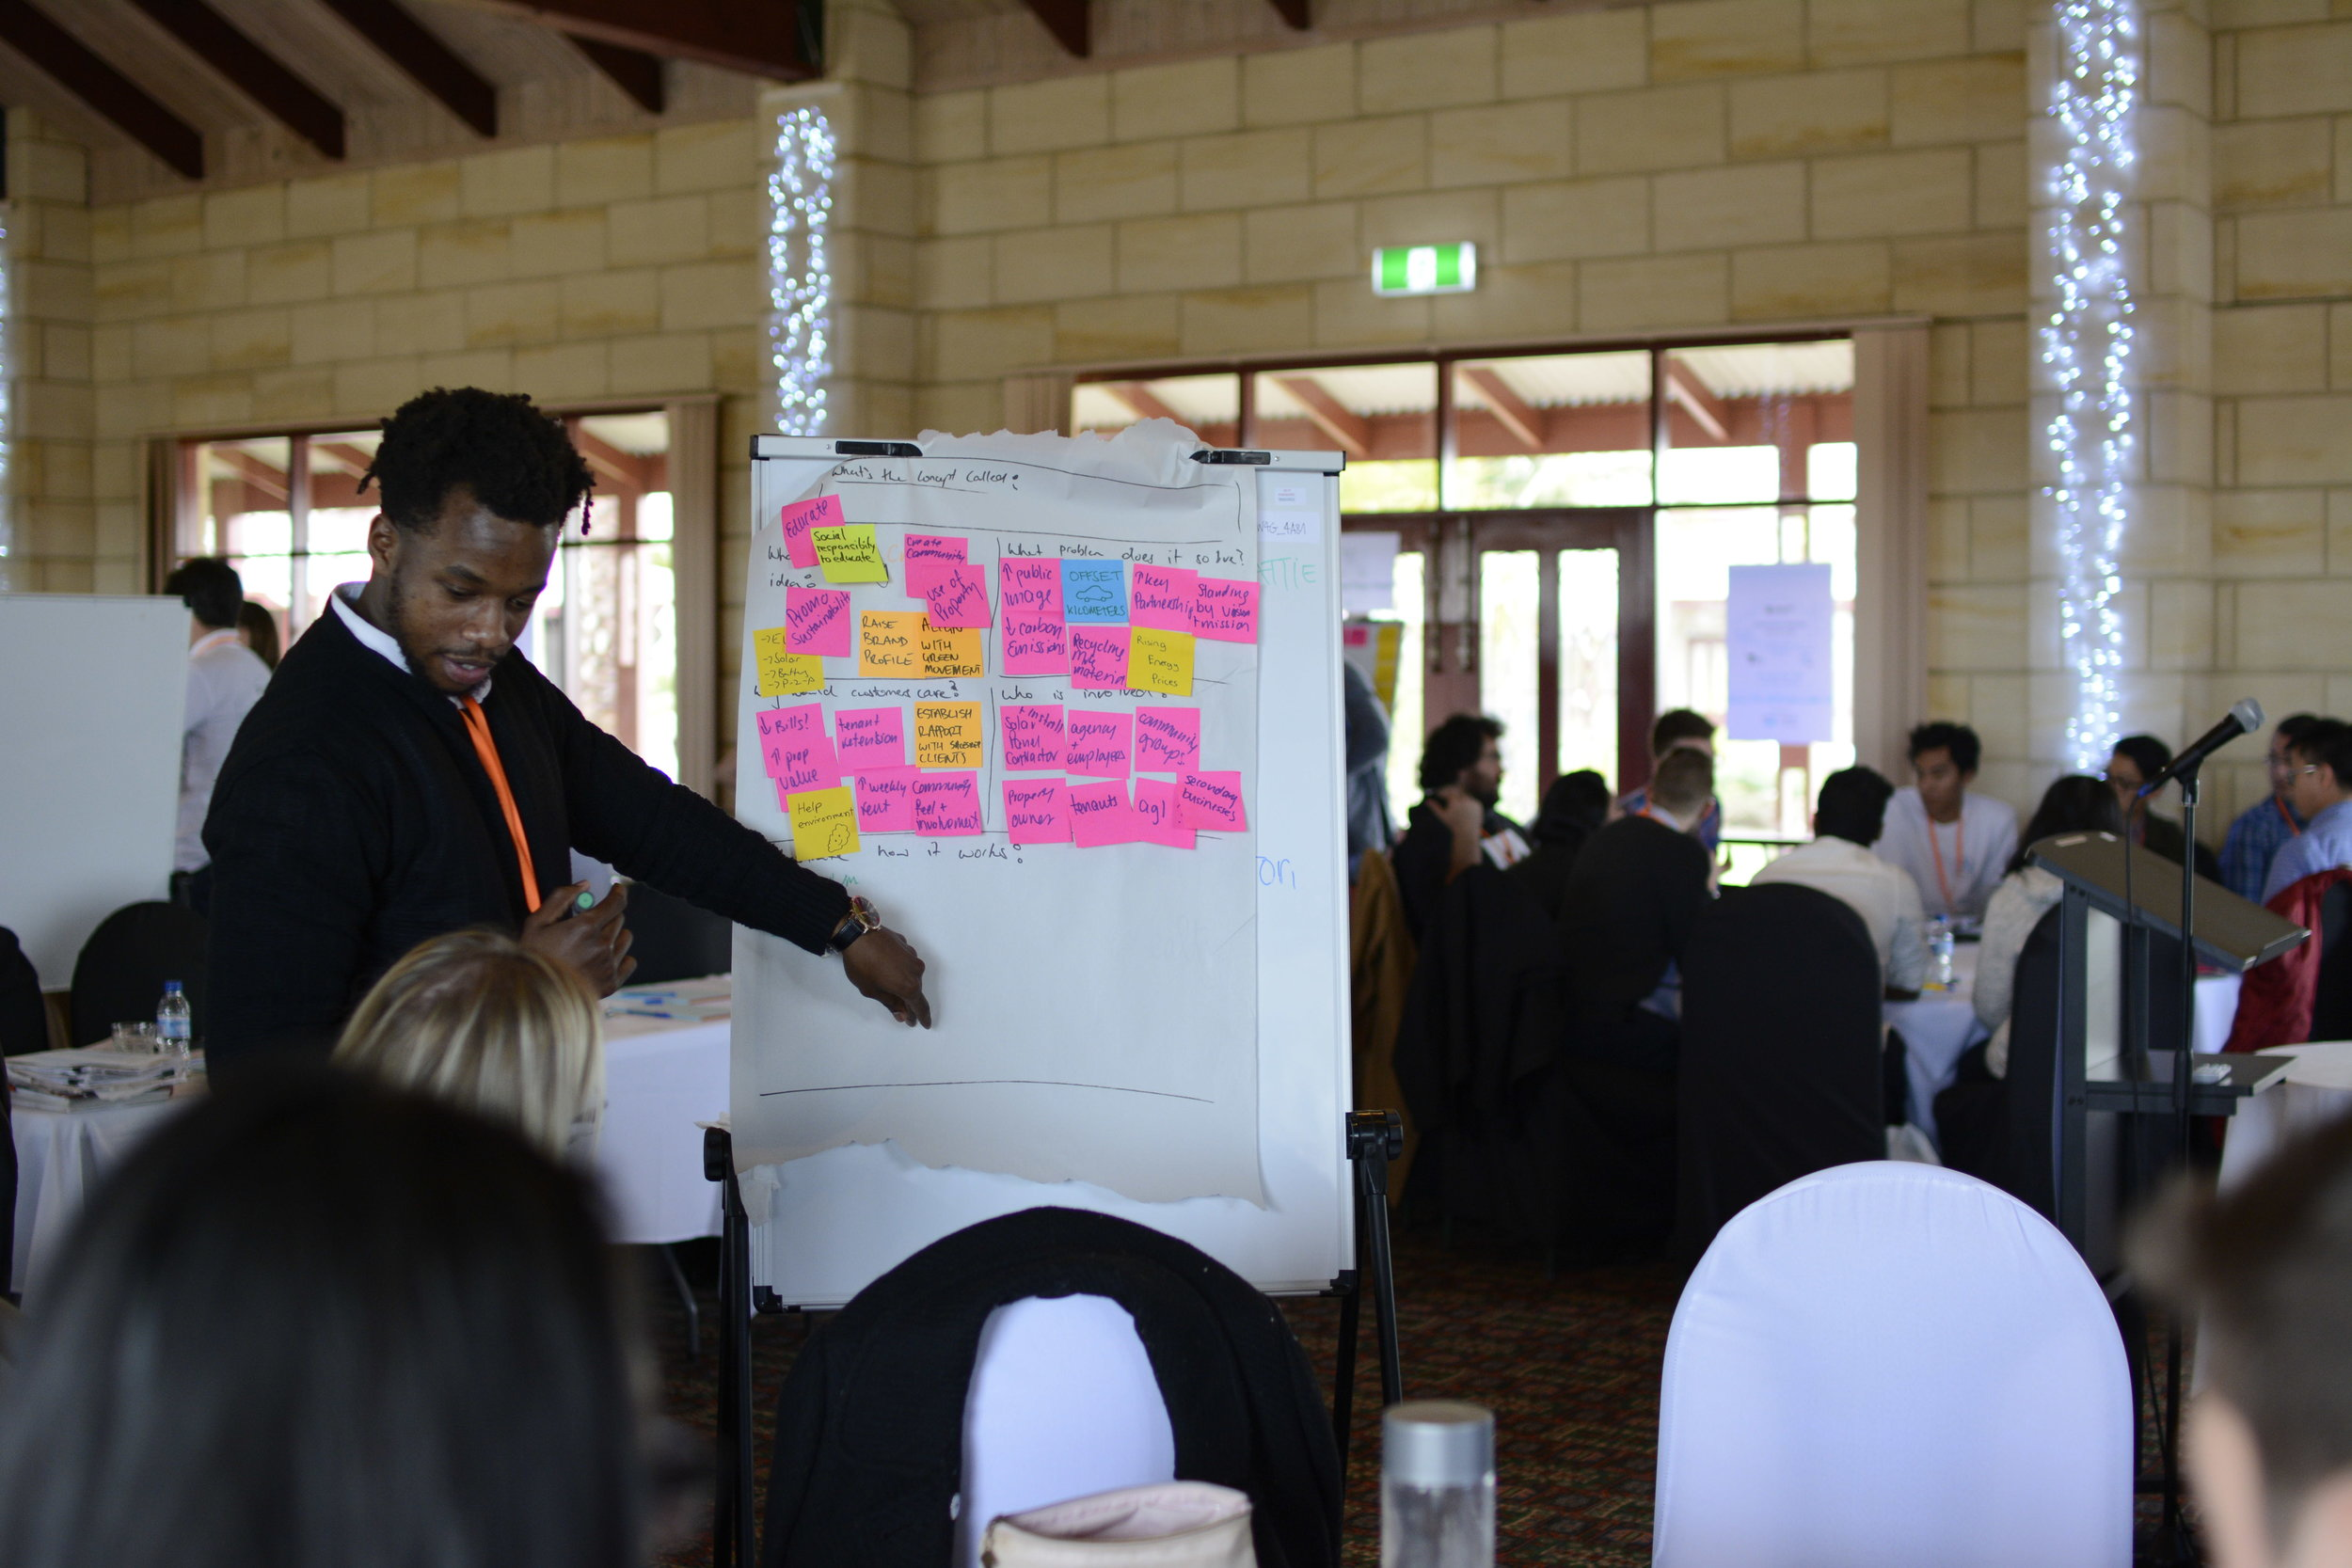 Our teams raced to finalise their solutions and presentations for judging by our panel